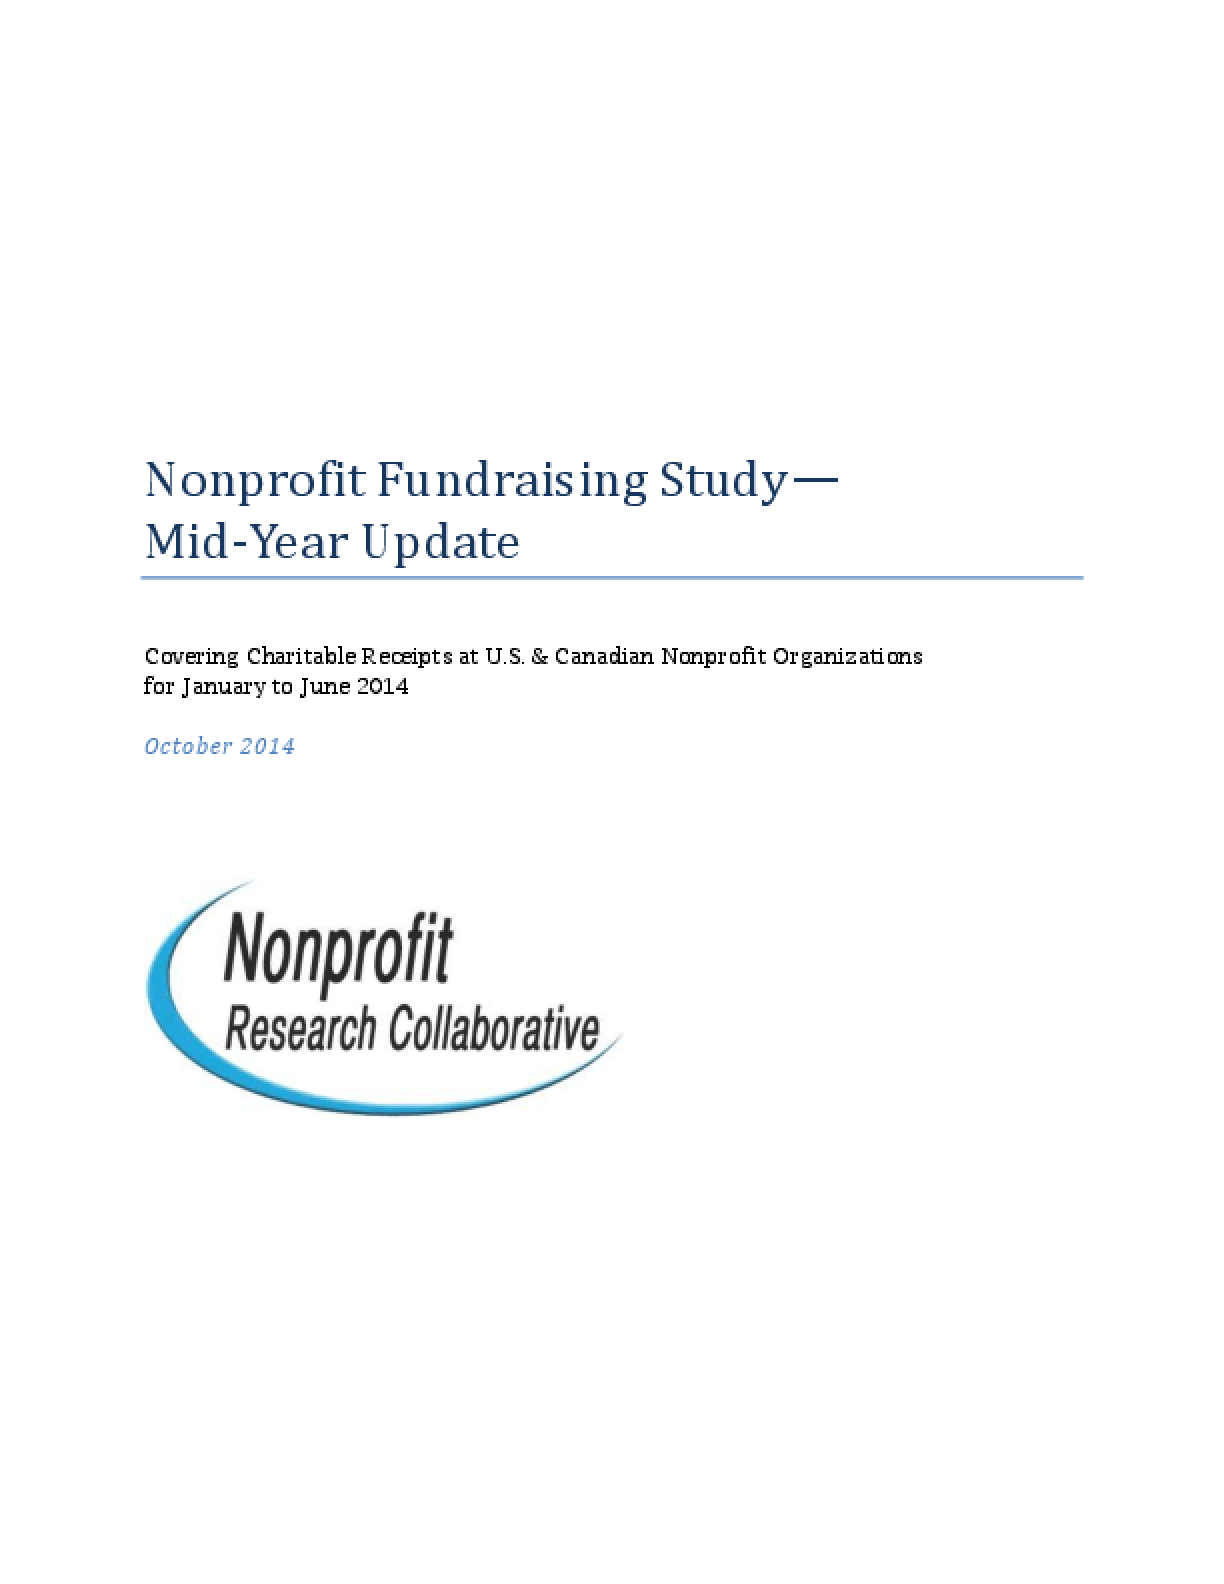 Nonprofit Fundraising Study: Mid-year Update: Covering Charitable Receipts At U.S. & Canadian Nonprofit Organizations for January to June 2014